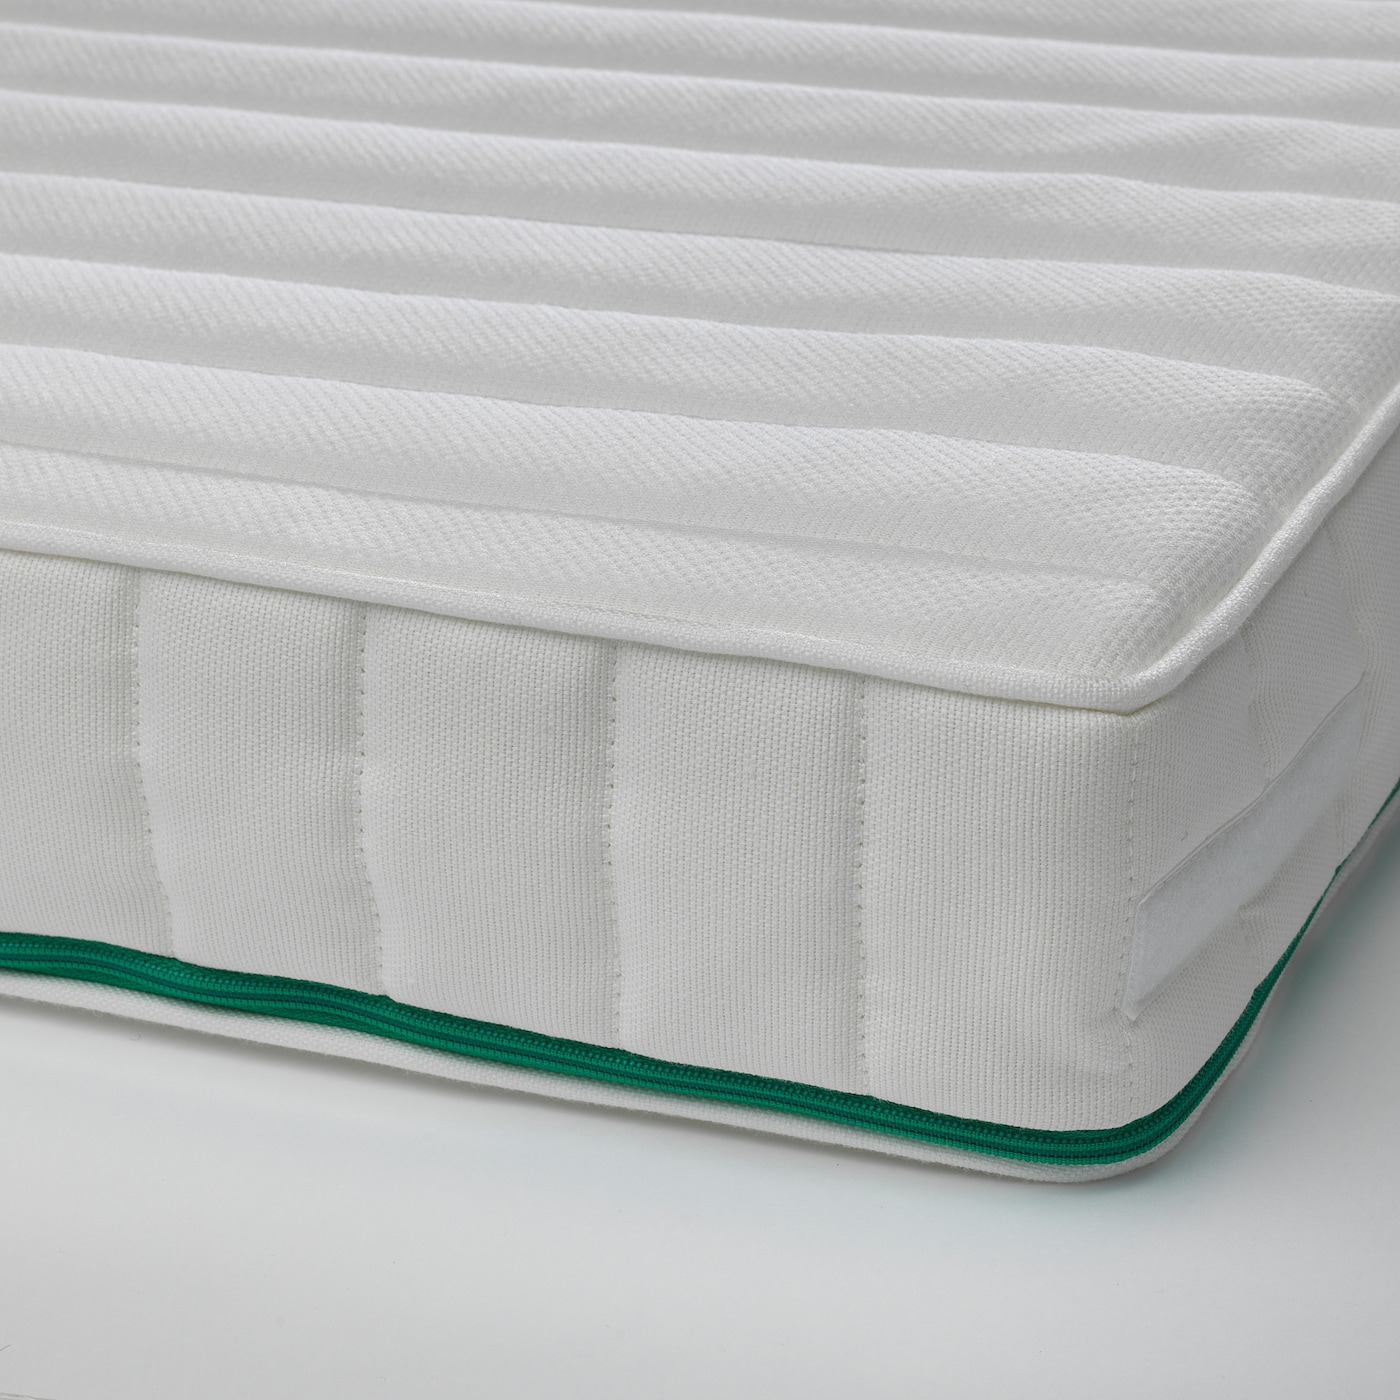 Mattress For Extendable Bed